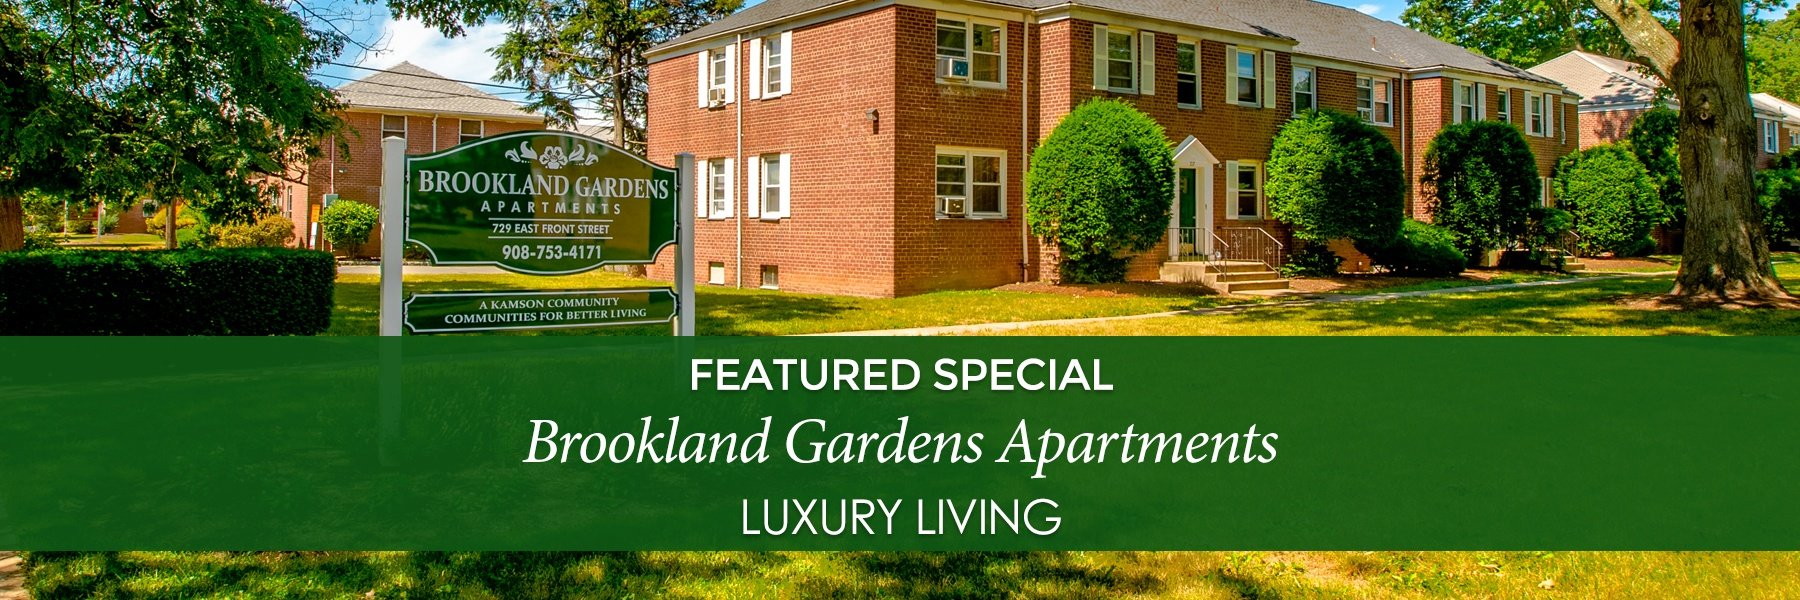 Brookland Gardens Apartments For Rent in Plainfield, NJ Specials